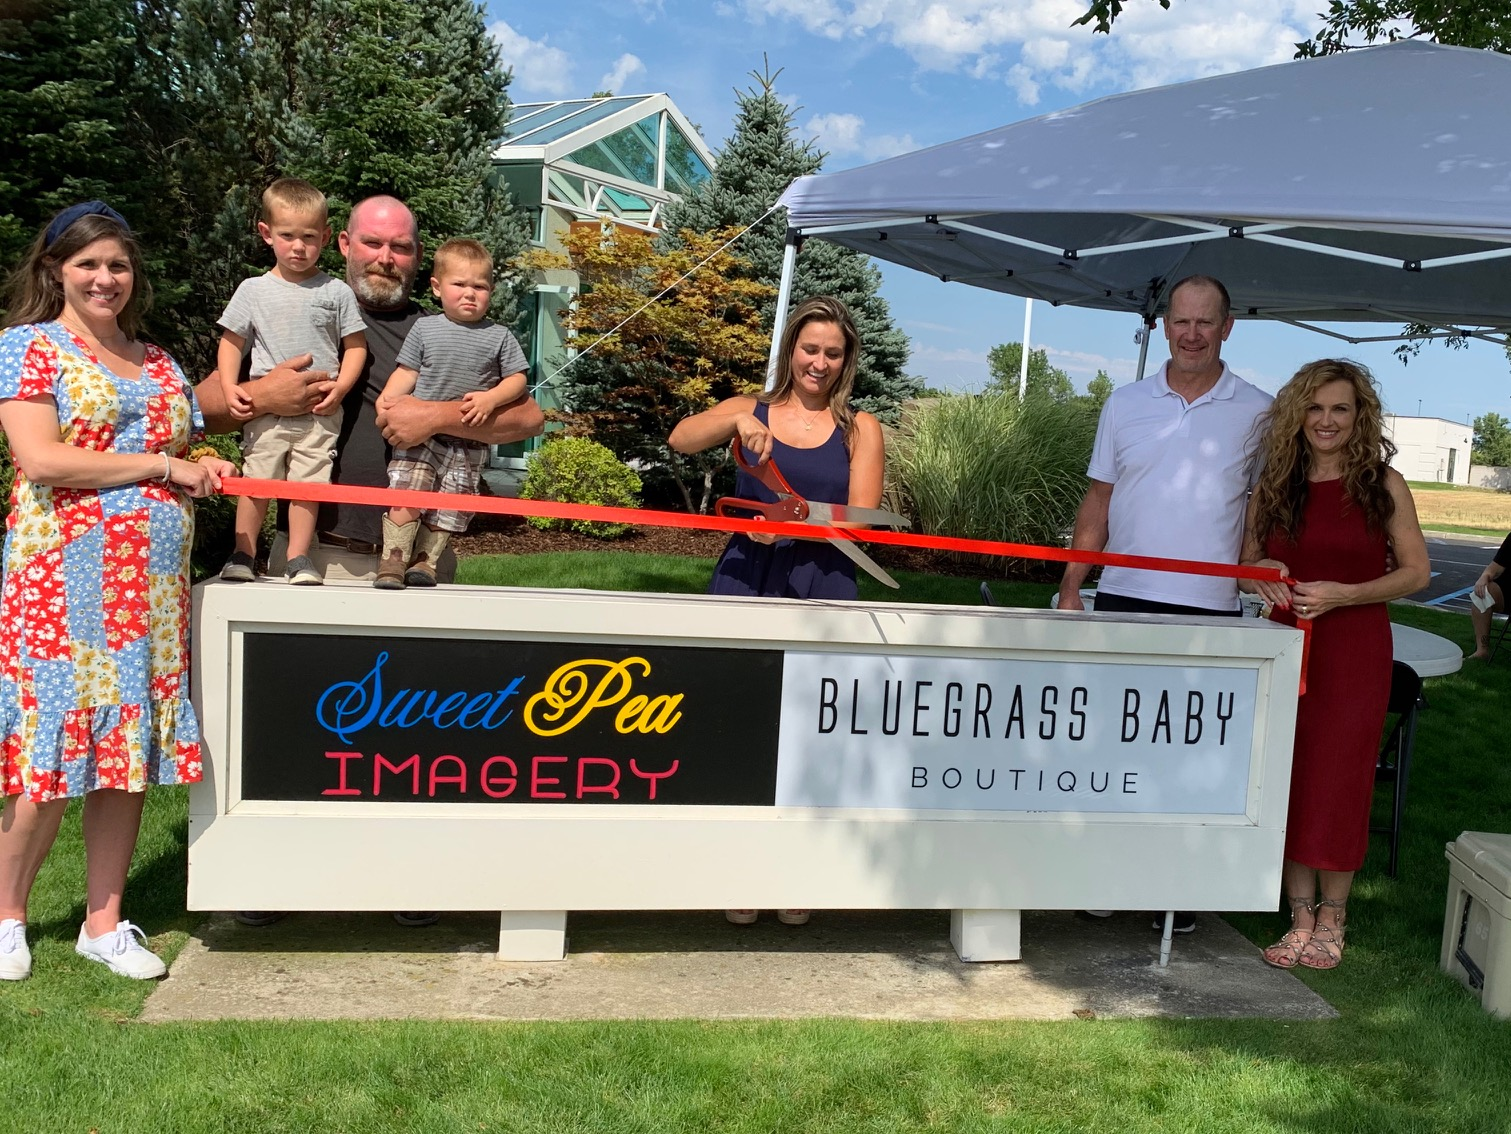 Sweet-Pea-Imagery-and-Blue-Grass-Baby-Boutique-ribbon-cutting.jpg